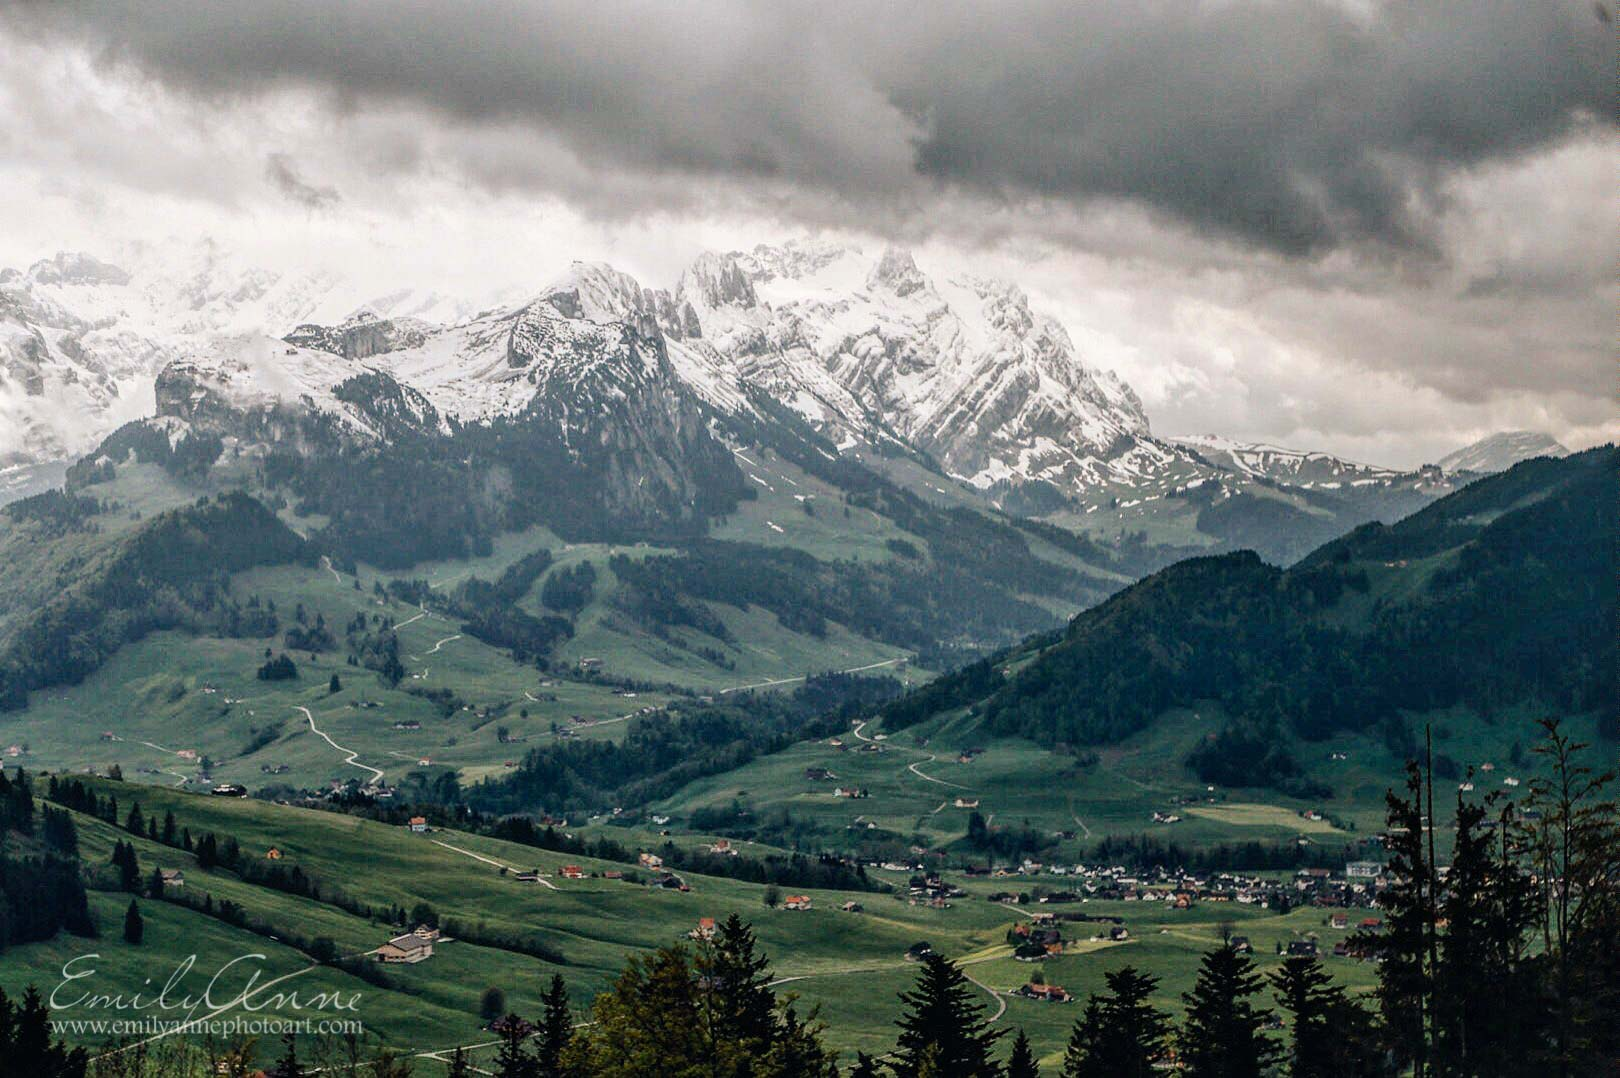 best photos of the swiss alps, shot in appenzell switzerland